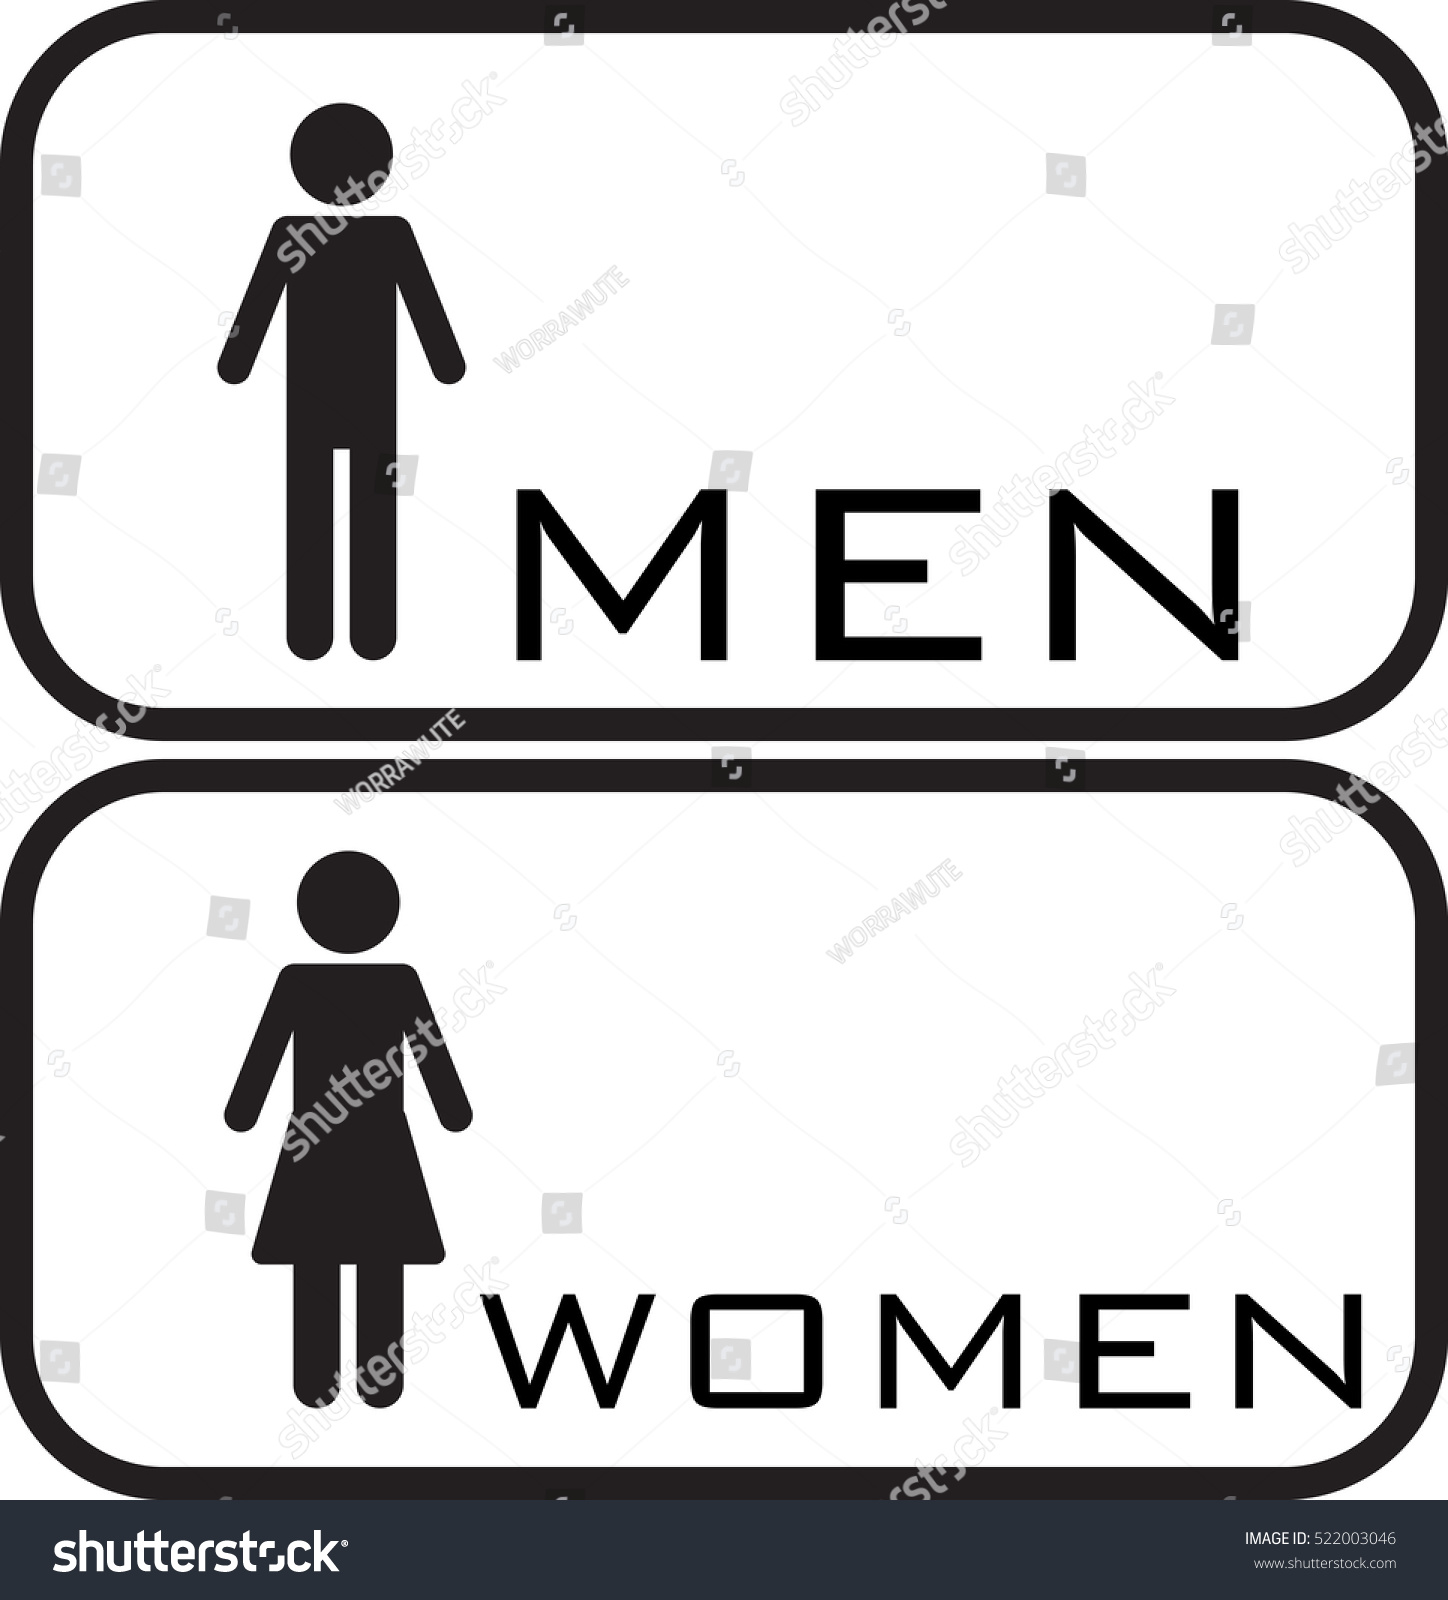 Men And Women Bathroom Signs  28 Images  Large Man Woman. Noentry Signs Of Stroke. Learner License Signs. Customer Service Signs Of Stroke. Side Signs. Spongiform Encephalopathy Signs. Age Signs. Valentine's Day Signs Of Stroke. Support Signs Of Stroke